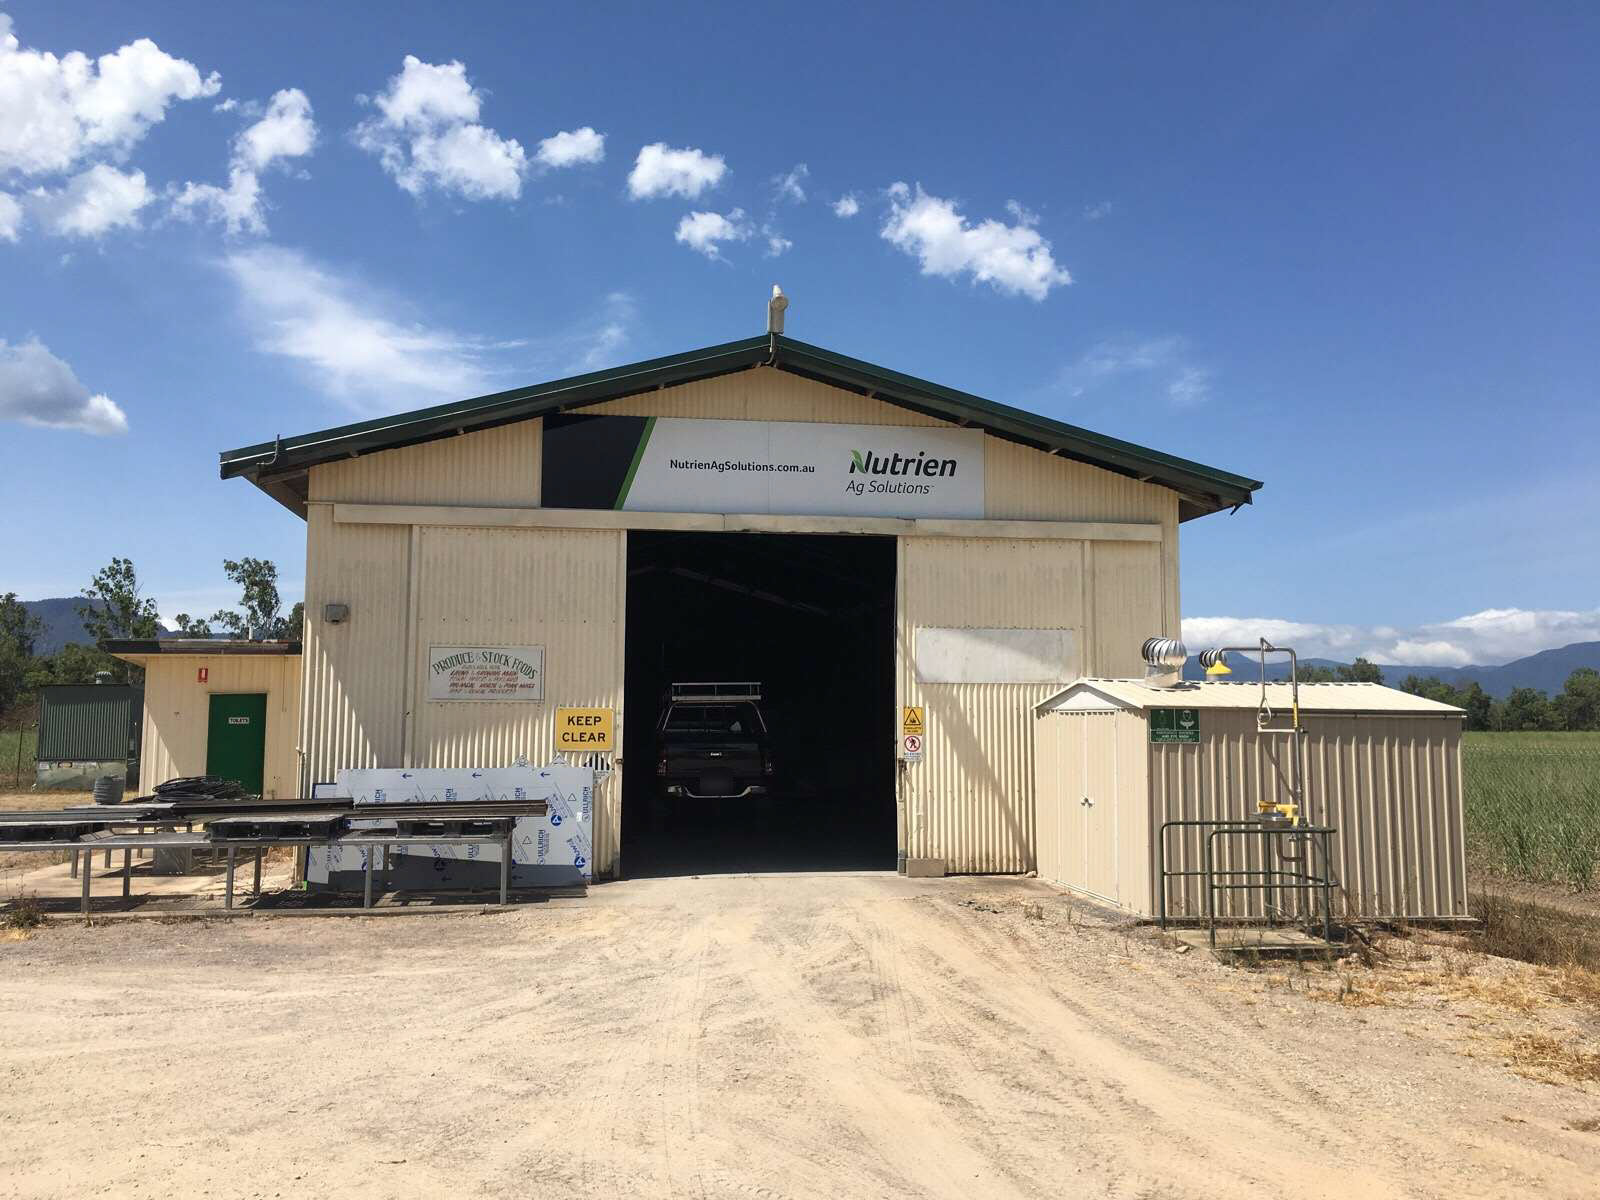 Nutrien Ag Solutions - Abergowrie, QLD 4850 - (07) 4777 4799 | ShowMeLocal.com